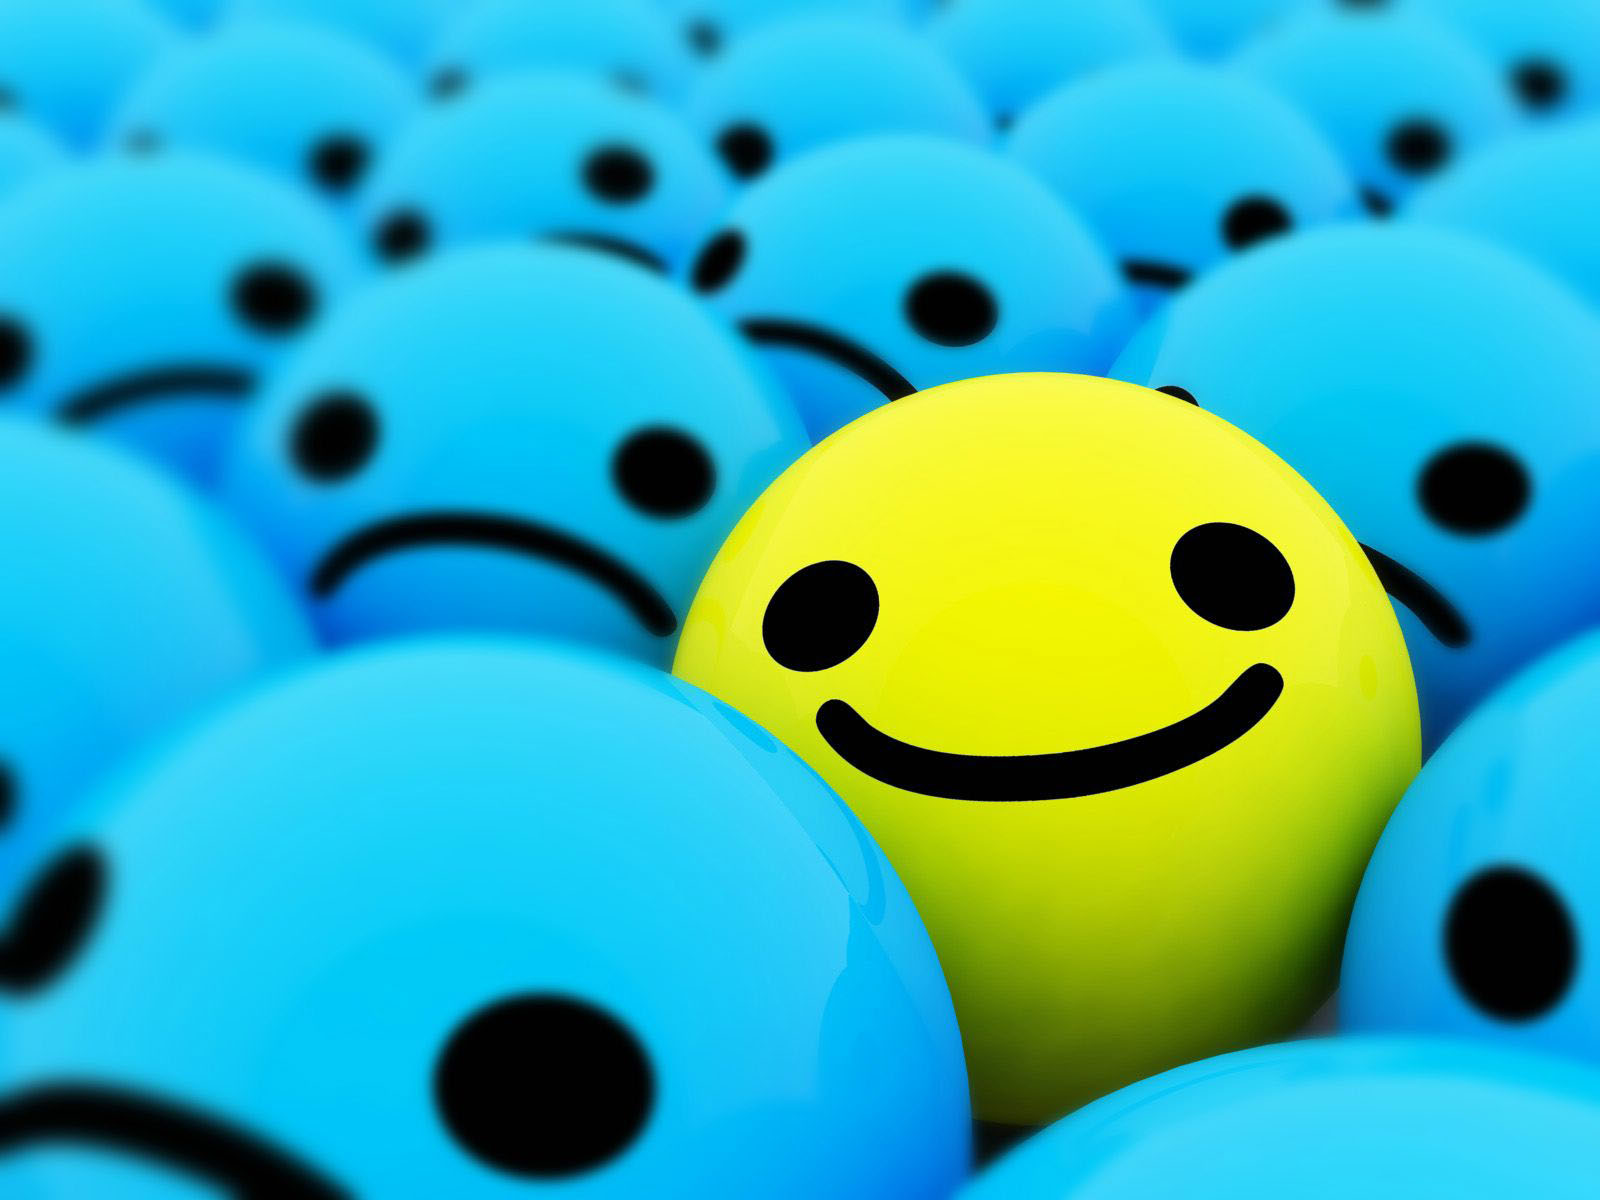 Happy Smiley Face in a Crowd 333.22 Kb